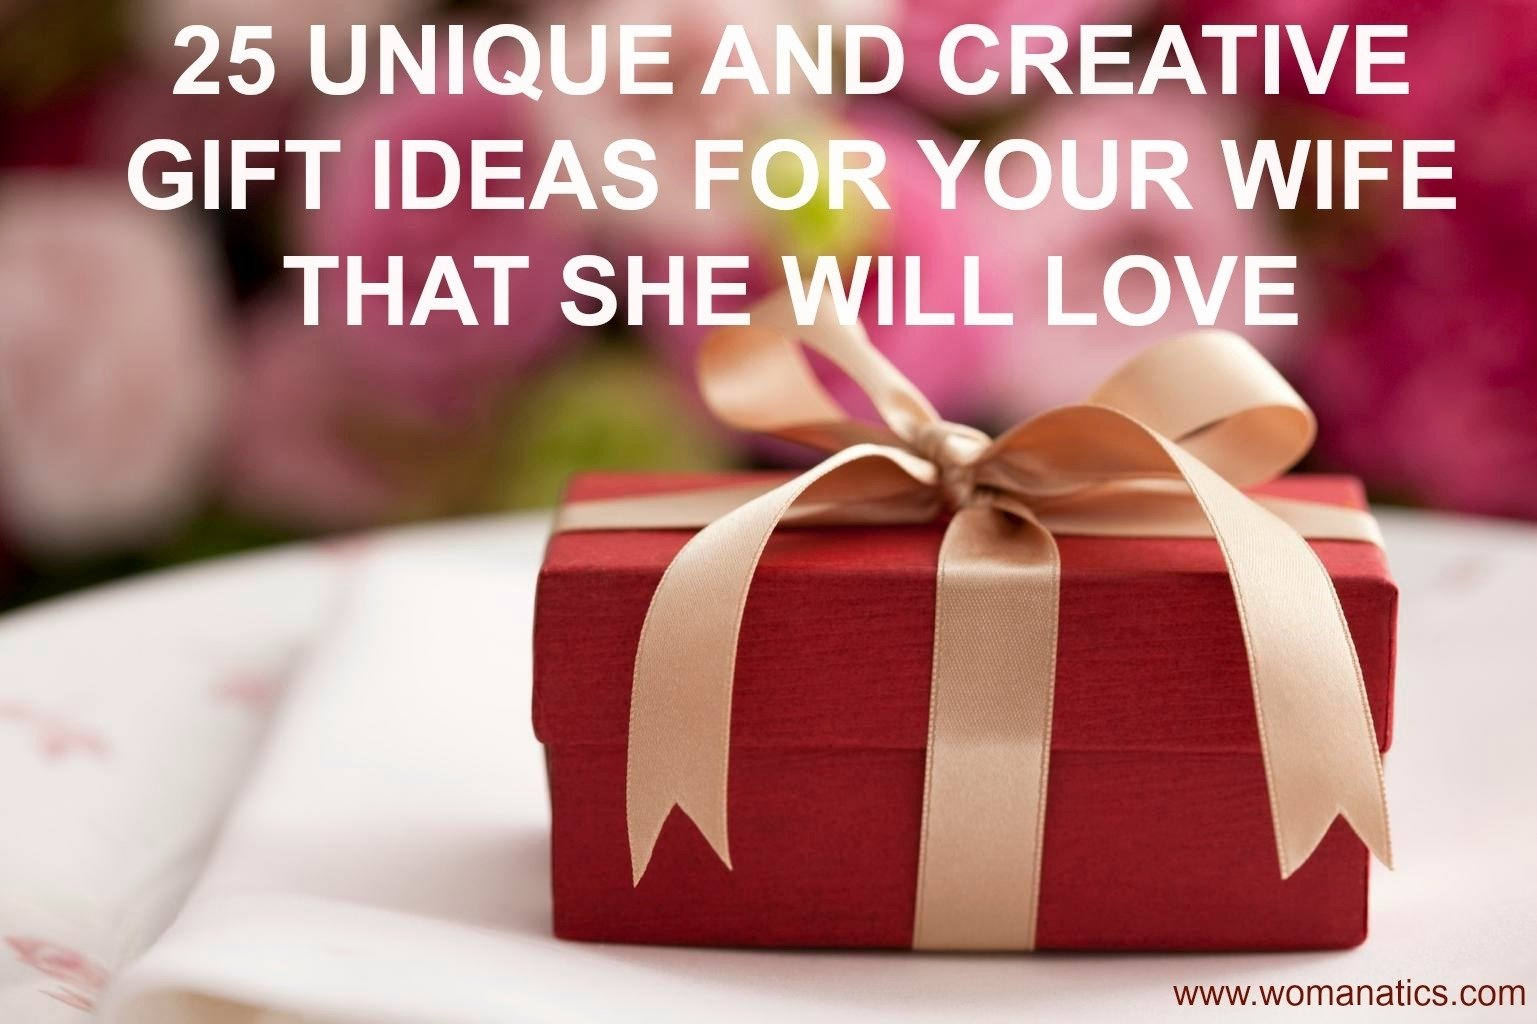 10 Famous Christmas Present Ideas For Wife 25 unique and creative gift ideas for your wife that she will love 16 2020